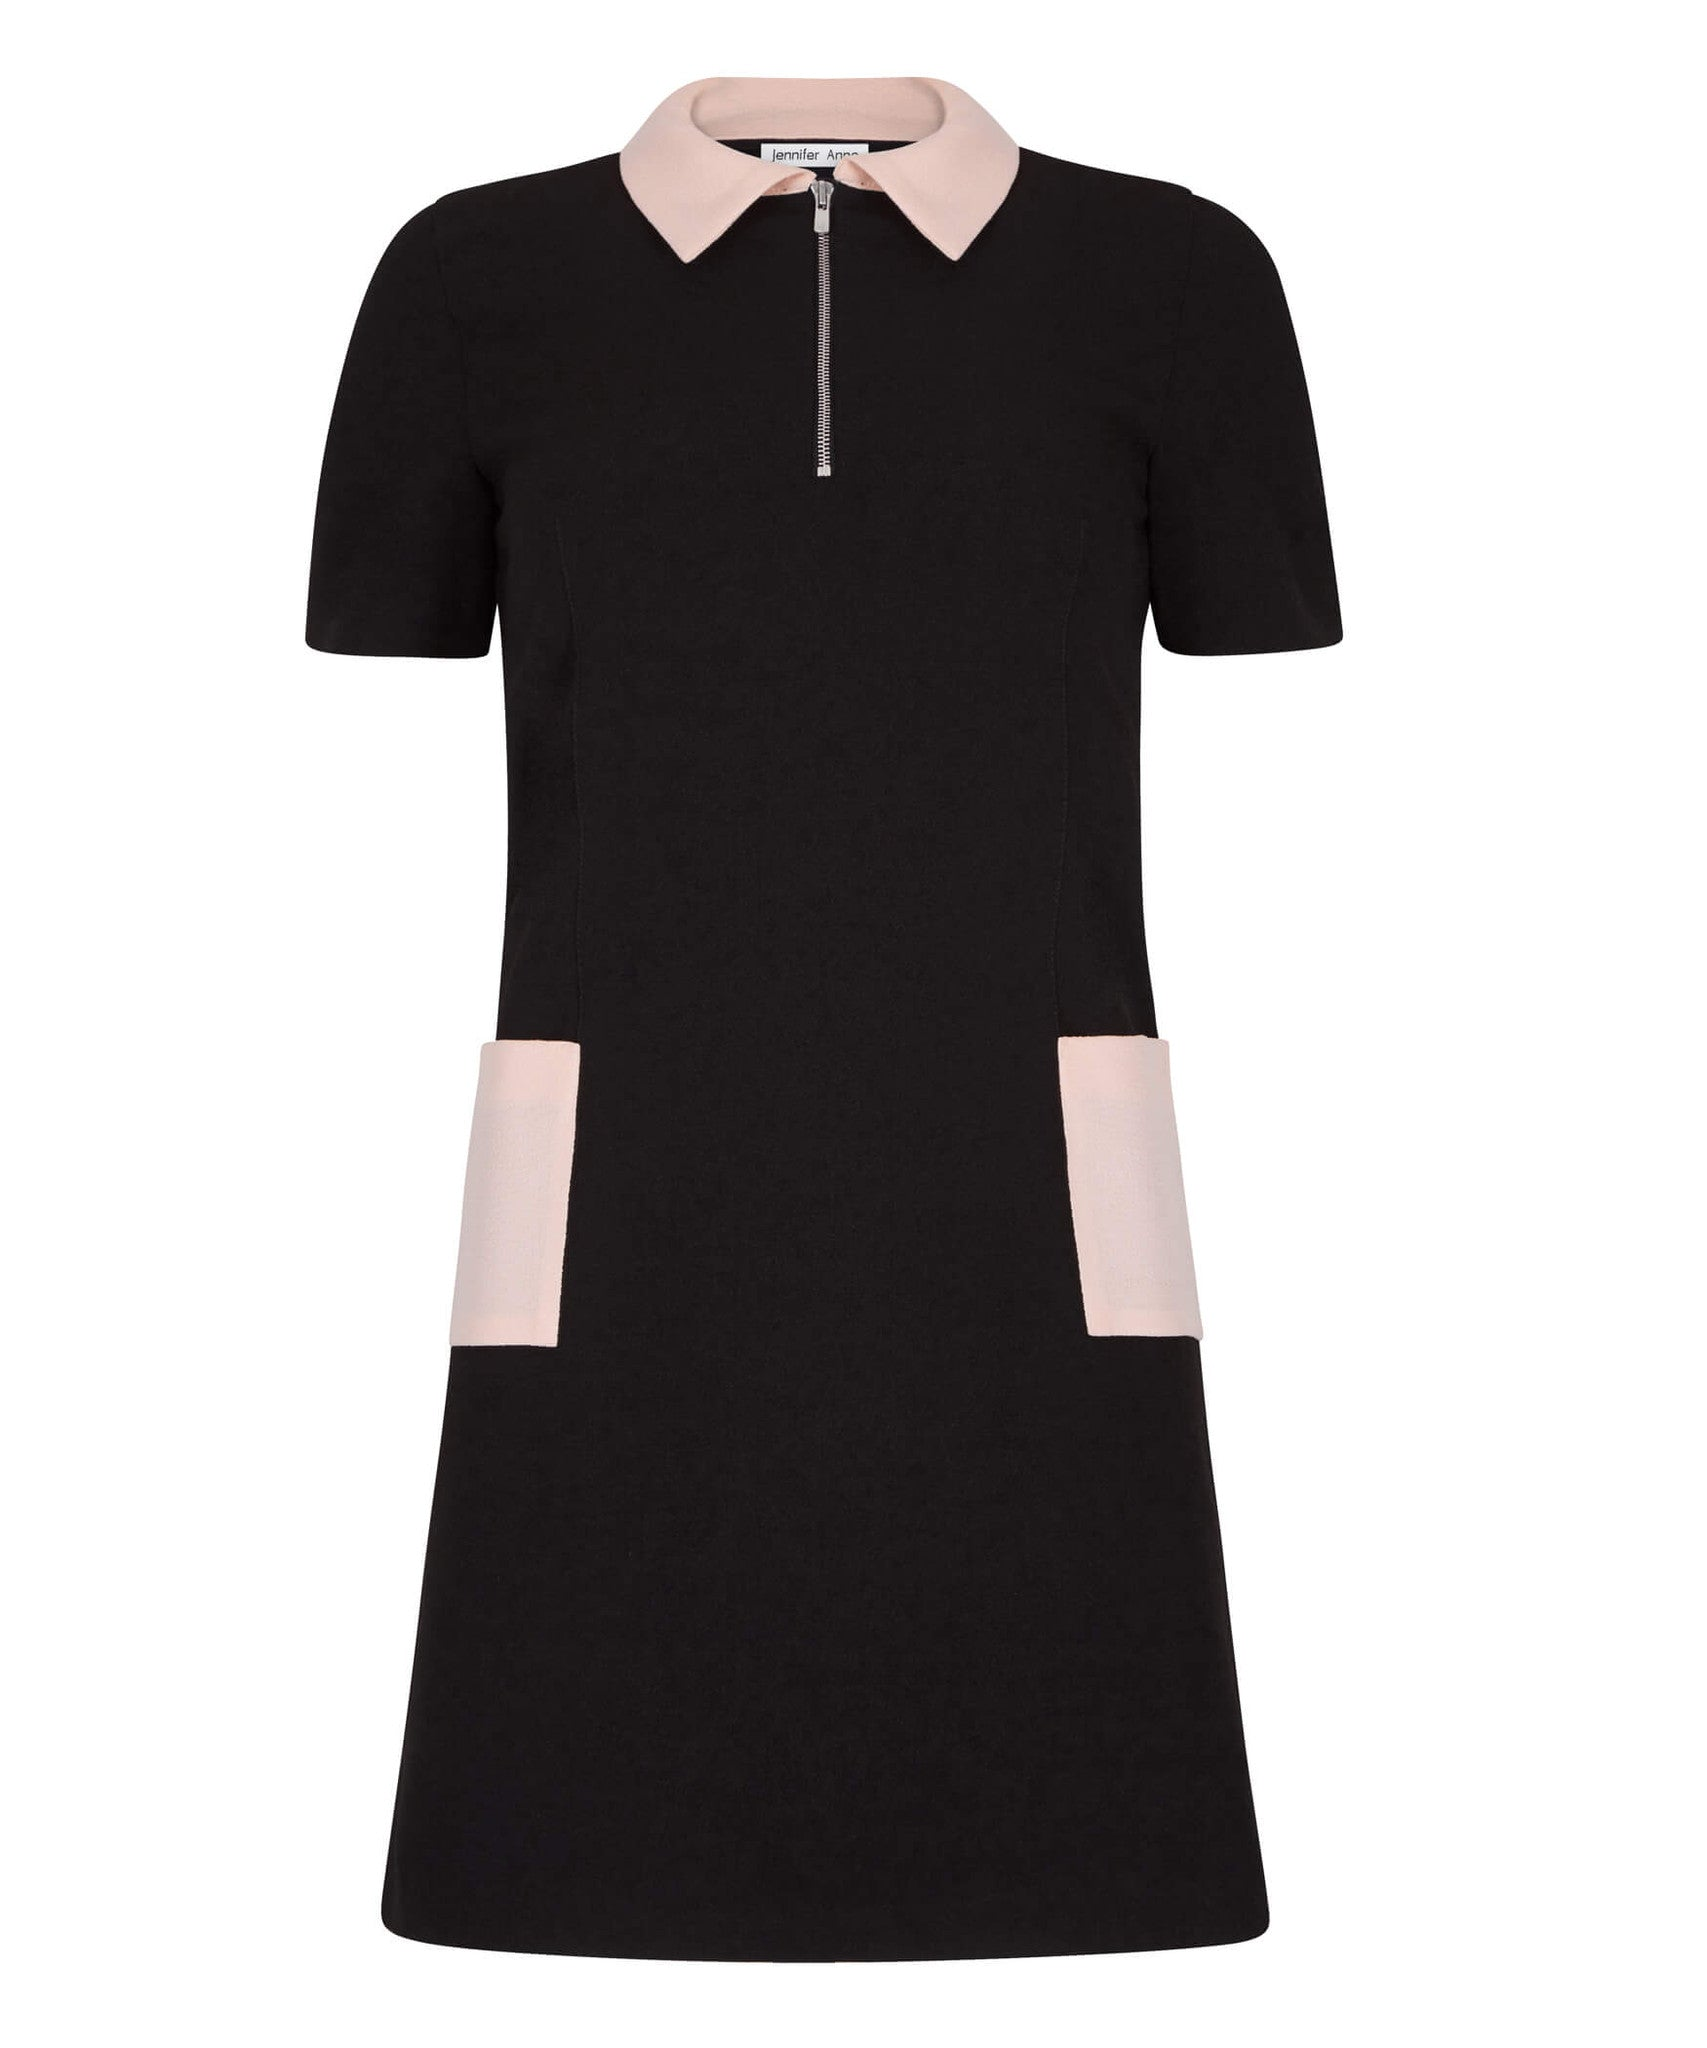 Petite Black Polo Dress with Blush - Jennifer-Anne